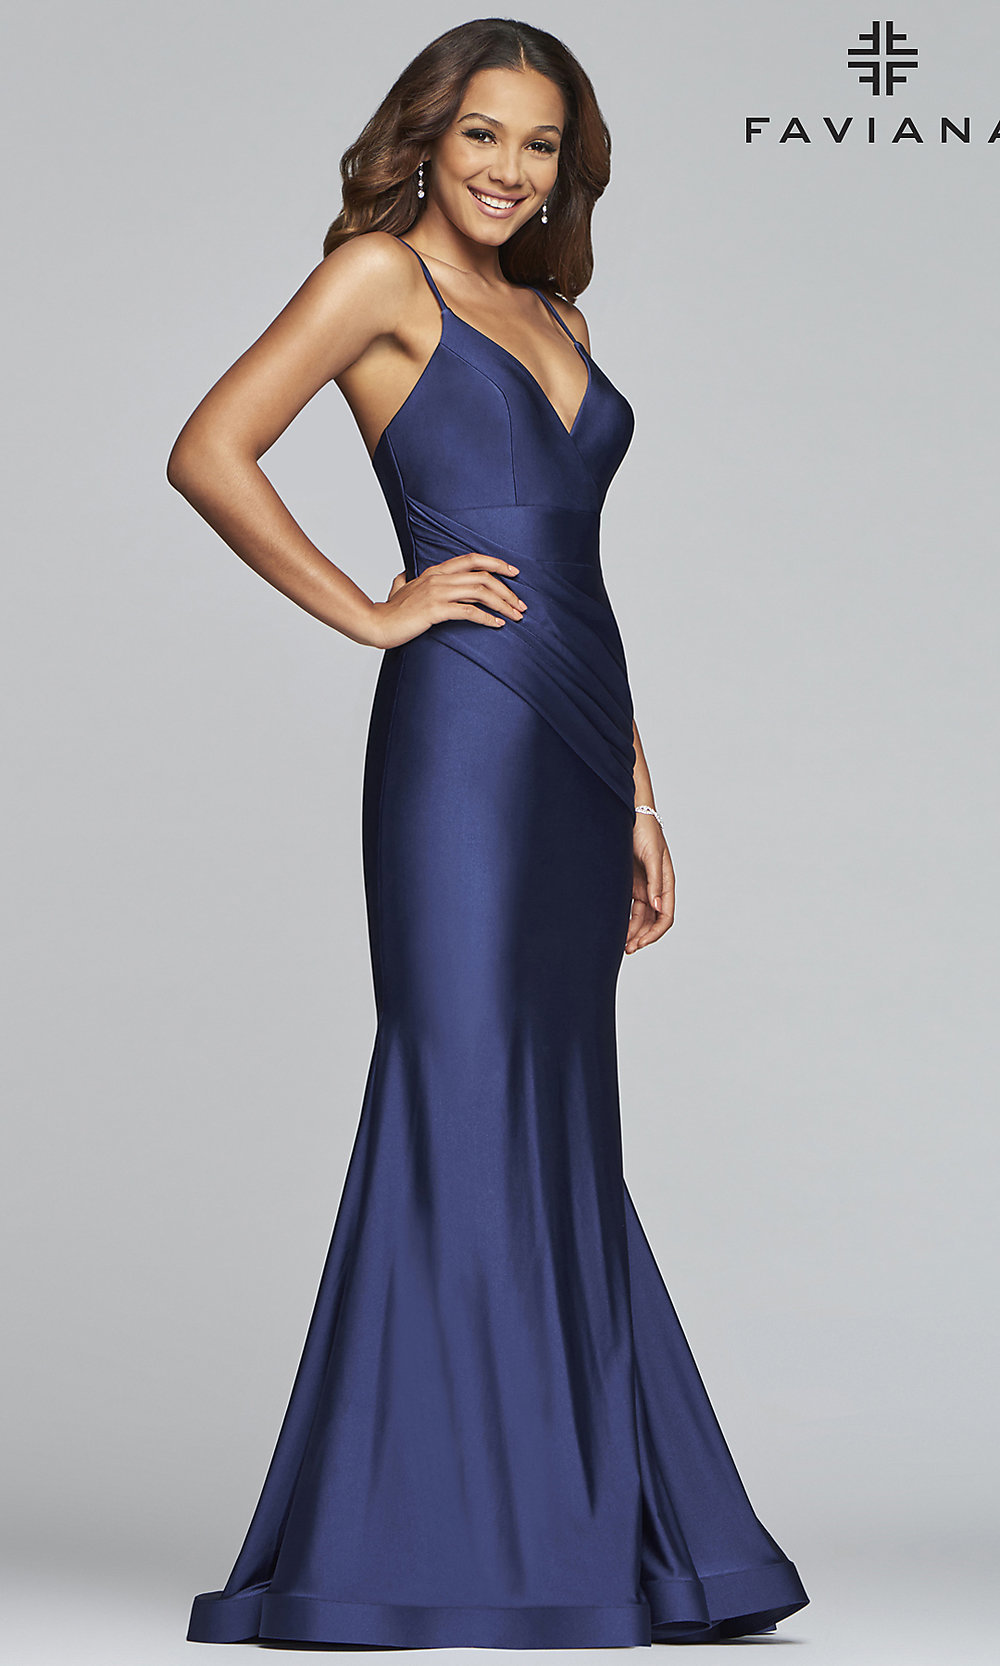 Long Mermaid Faviana Formal Prom Dress - PromGirl